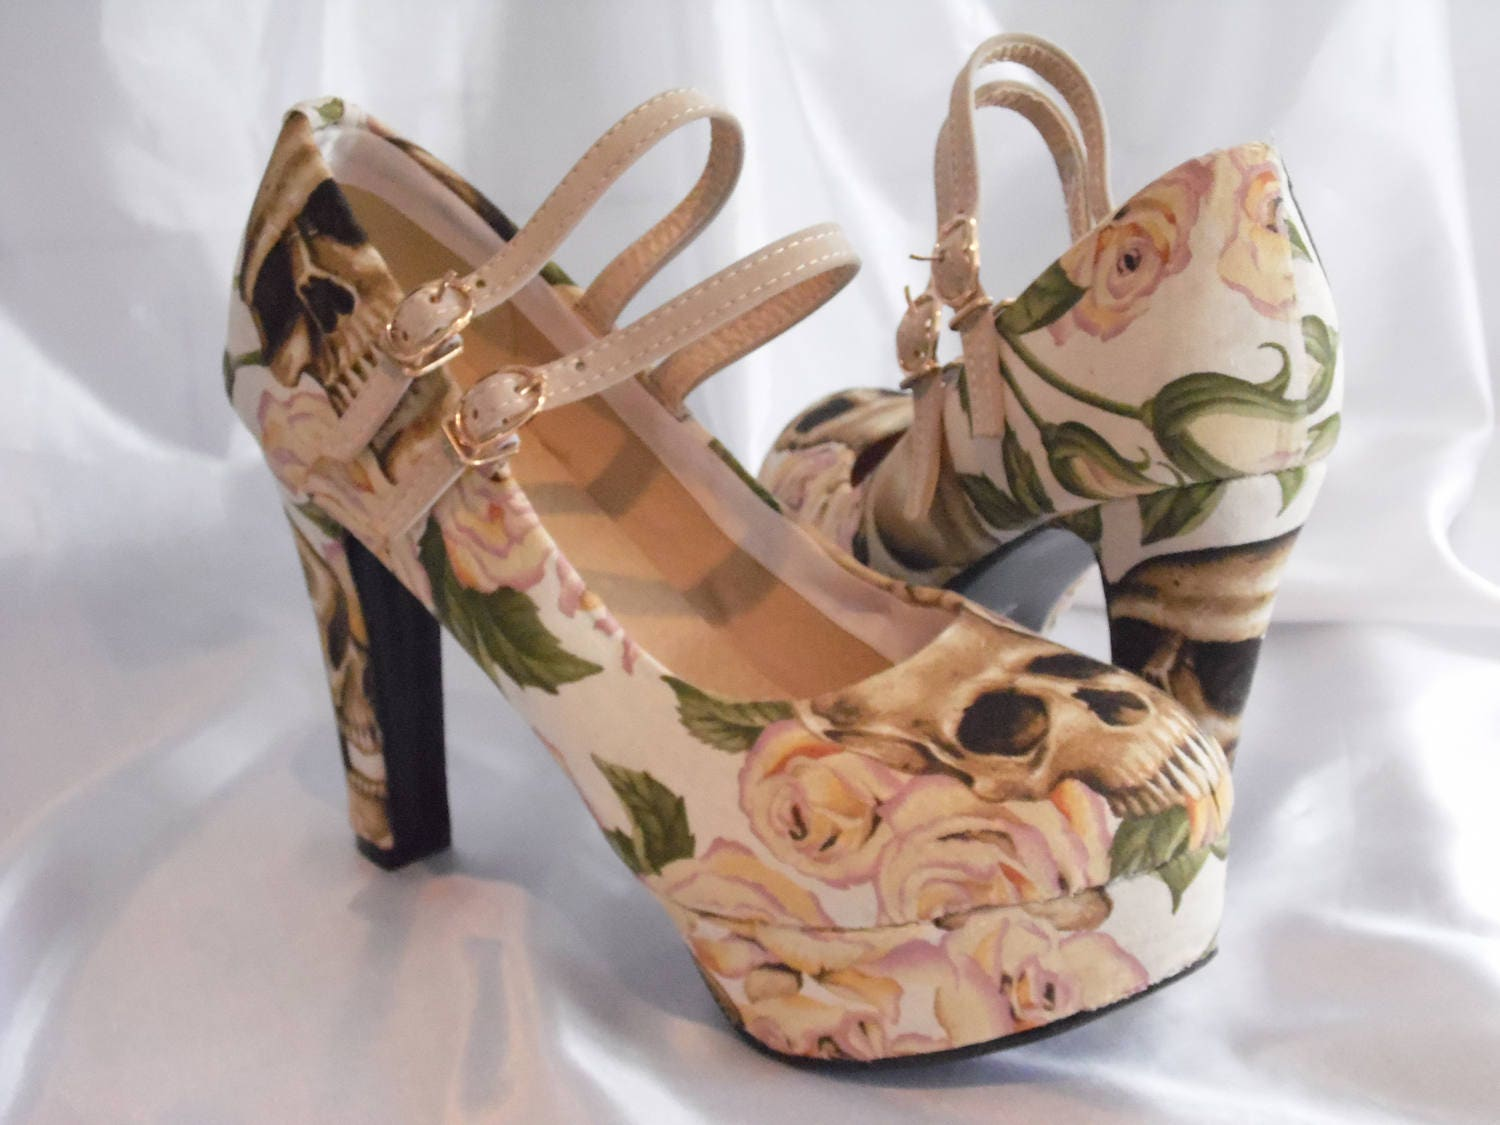 Custom Shoes  Womens Shoes  Skull Rose Fabric  Alexander Henry inspired shoes  Alternative Wedding Shoes  Mary Jane Style shoes